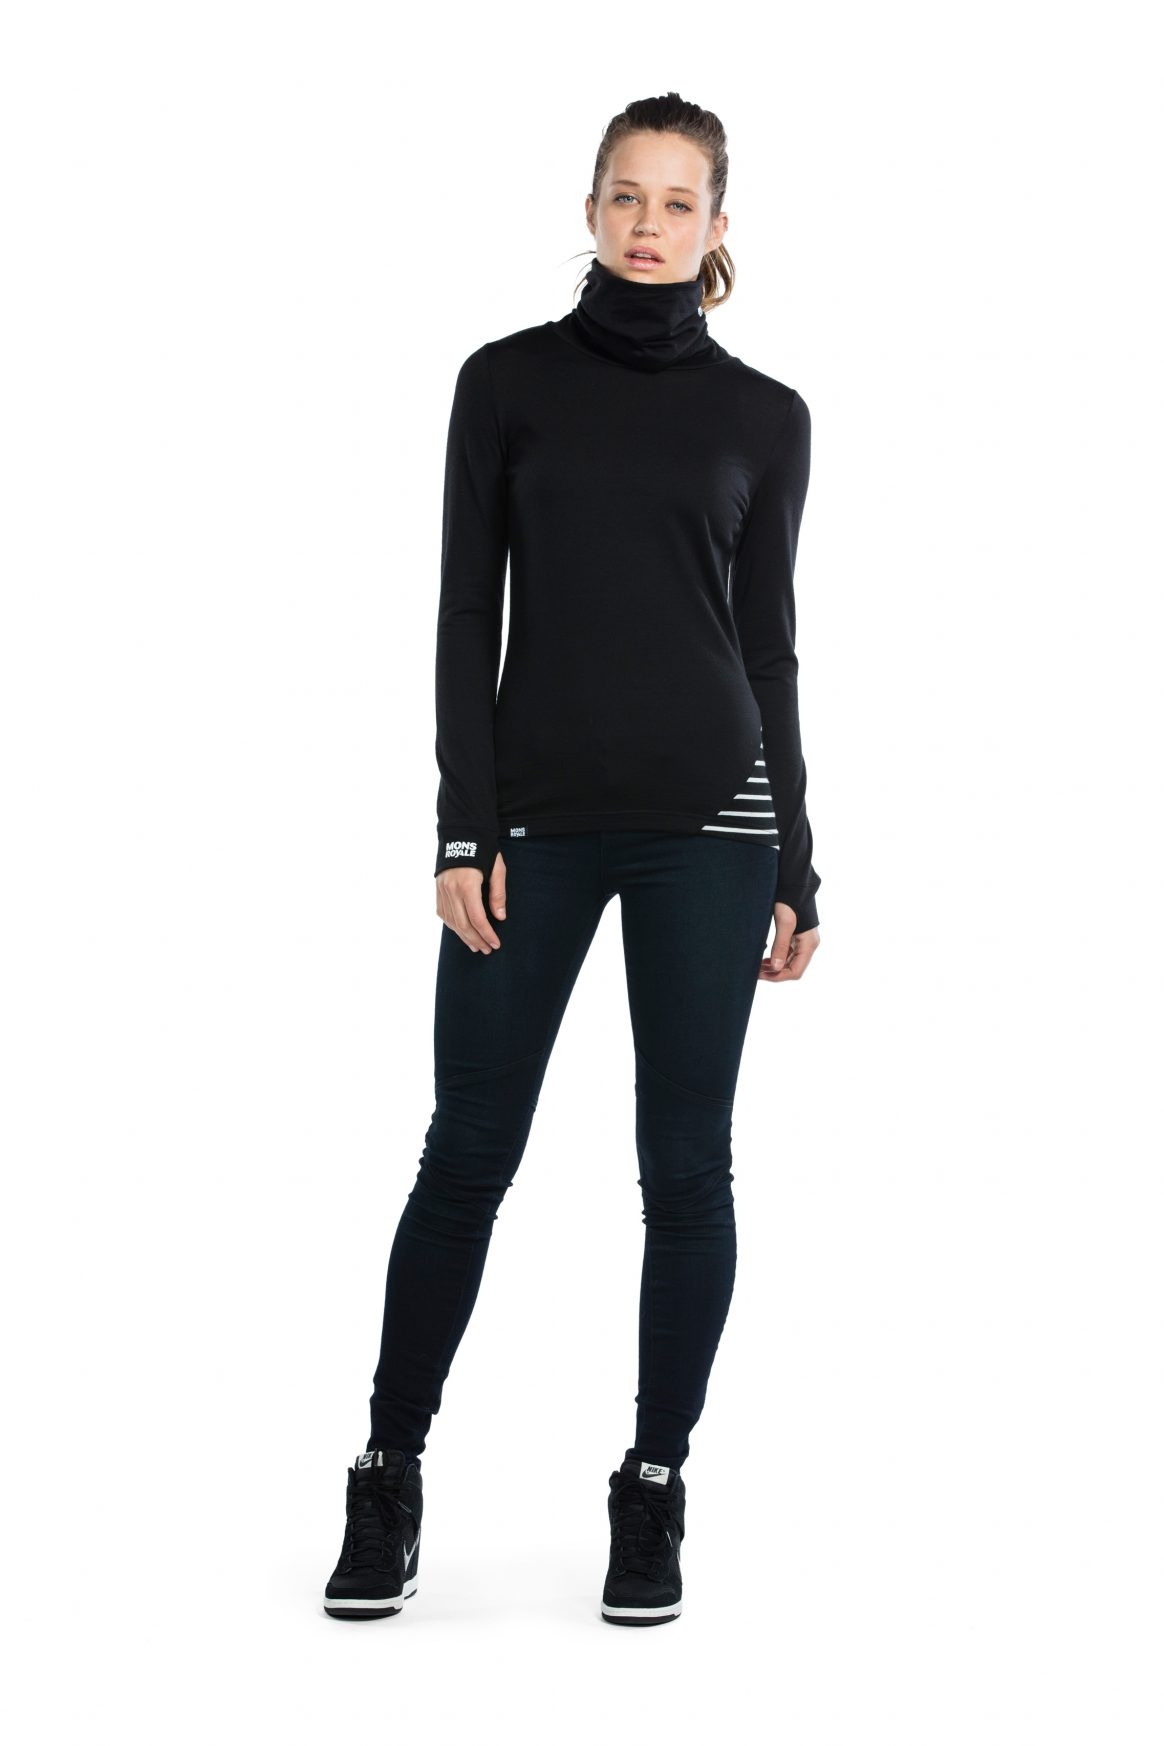 Mons Royale WMN's Cornice Rollover Baselayer Review